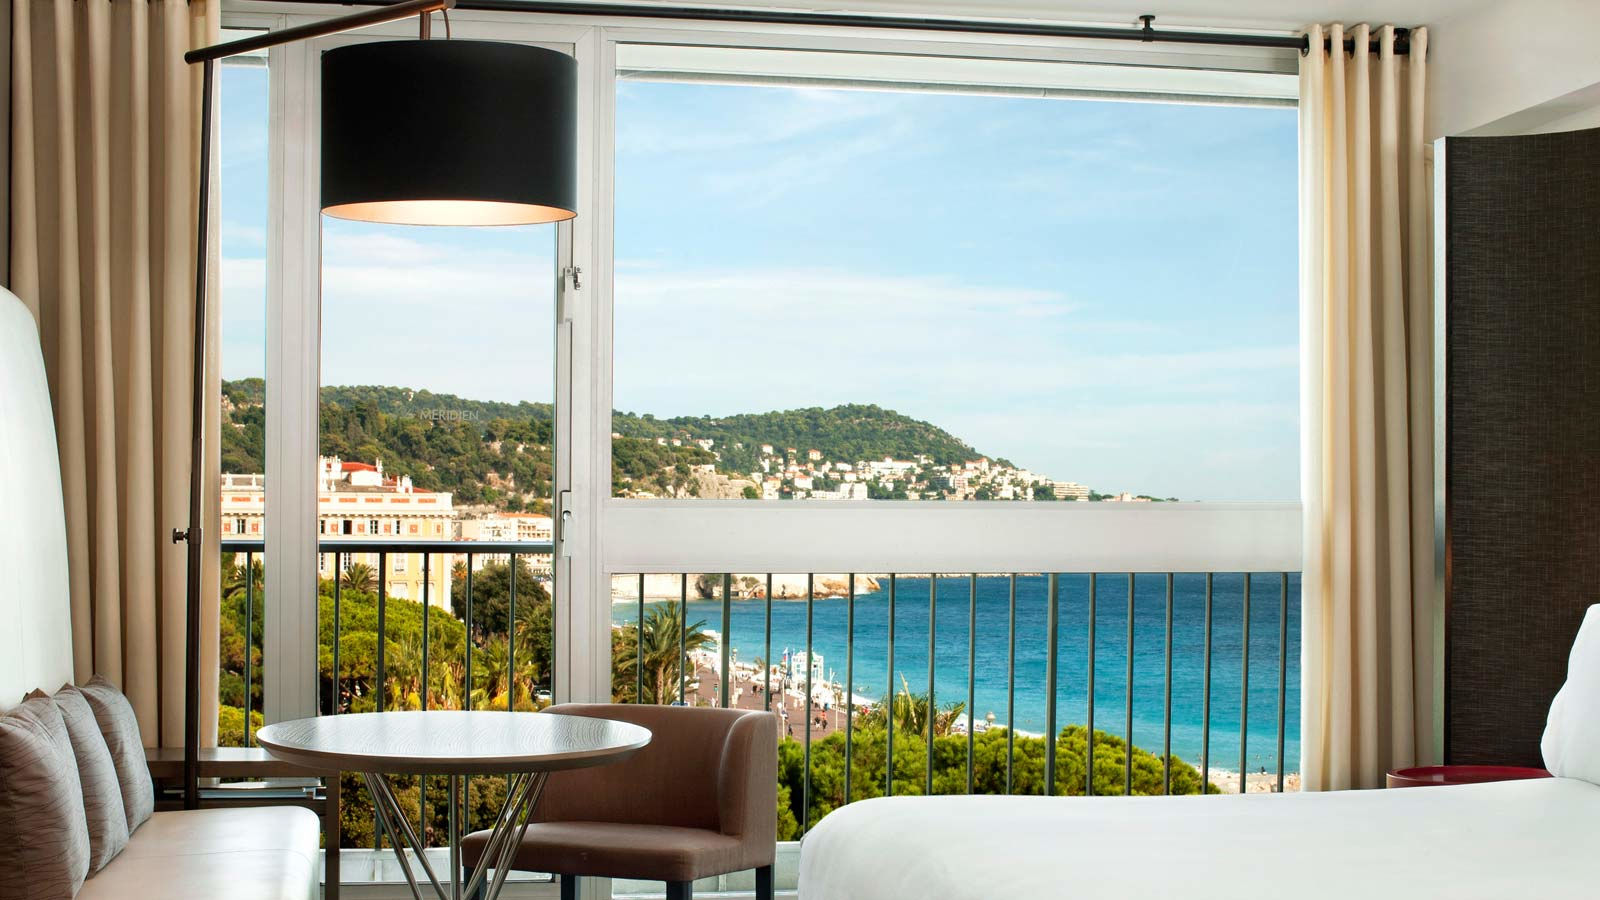 Deluxe Room Gardens and Sea View in Le Meridien Nice